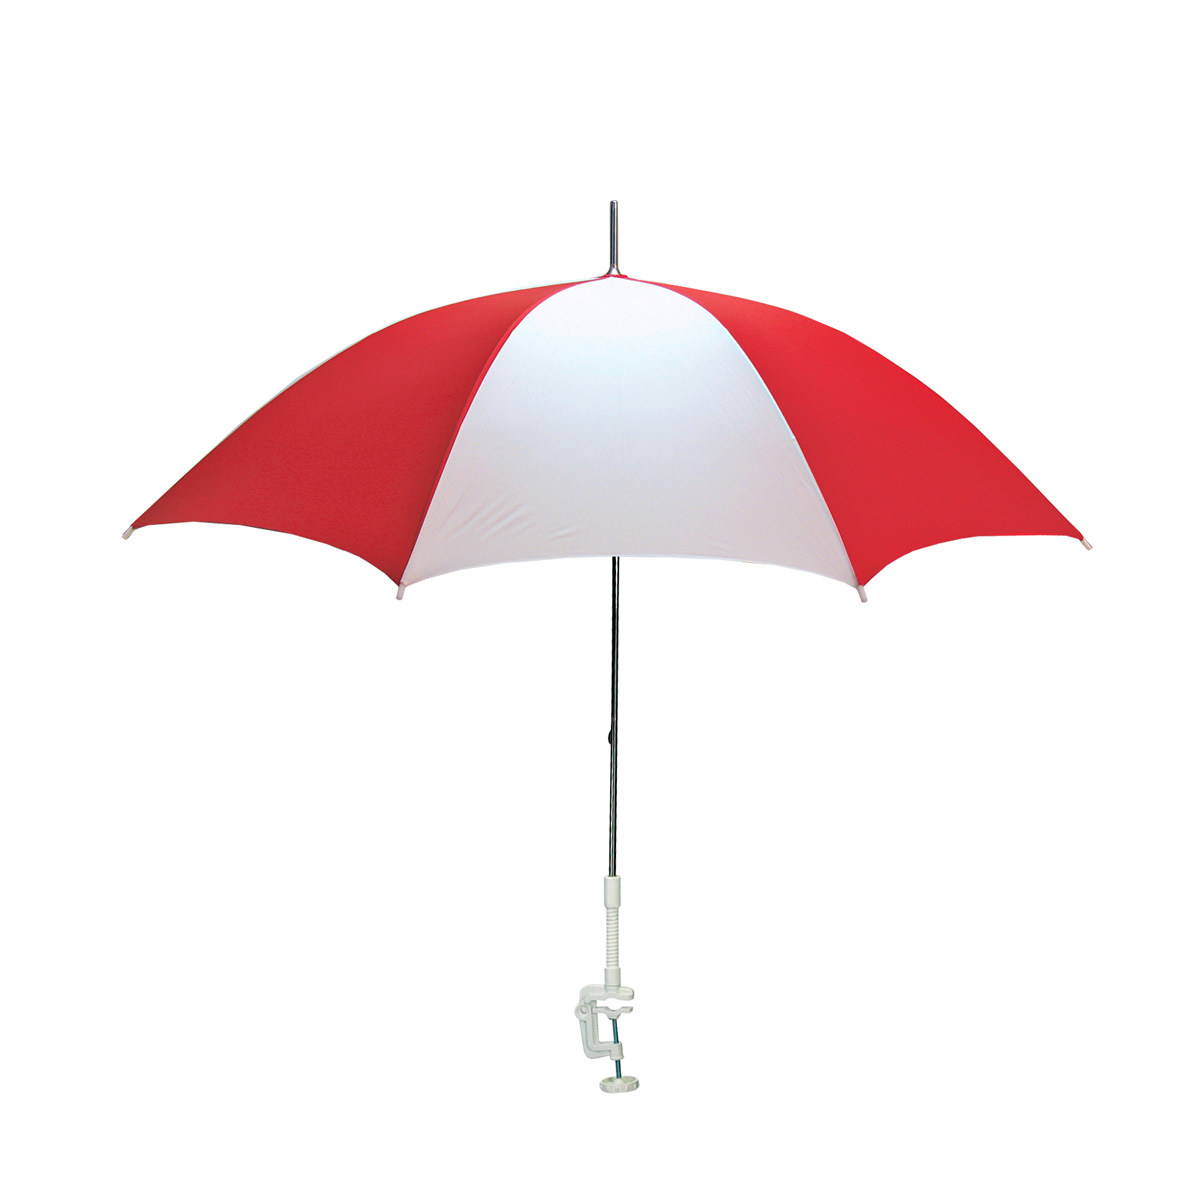 Red Beach Umbrella Cartoon